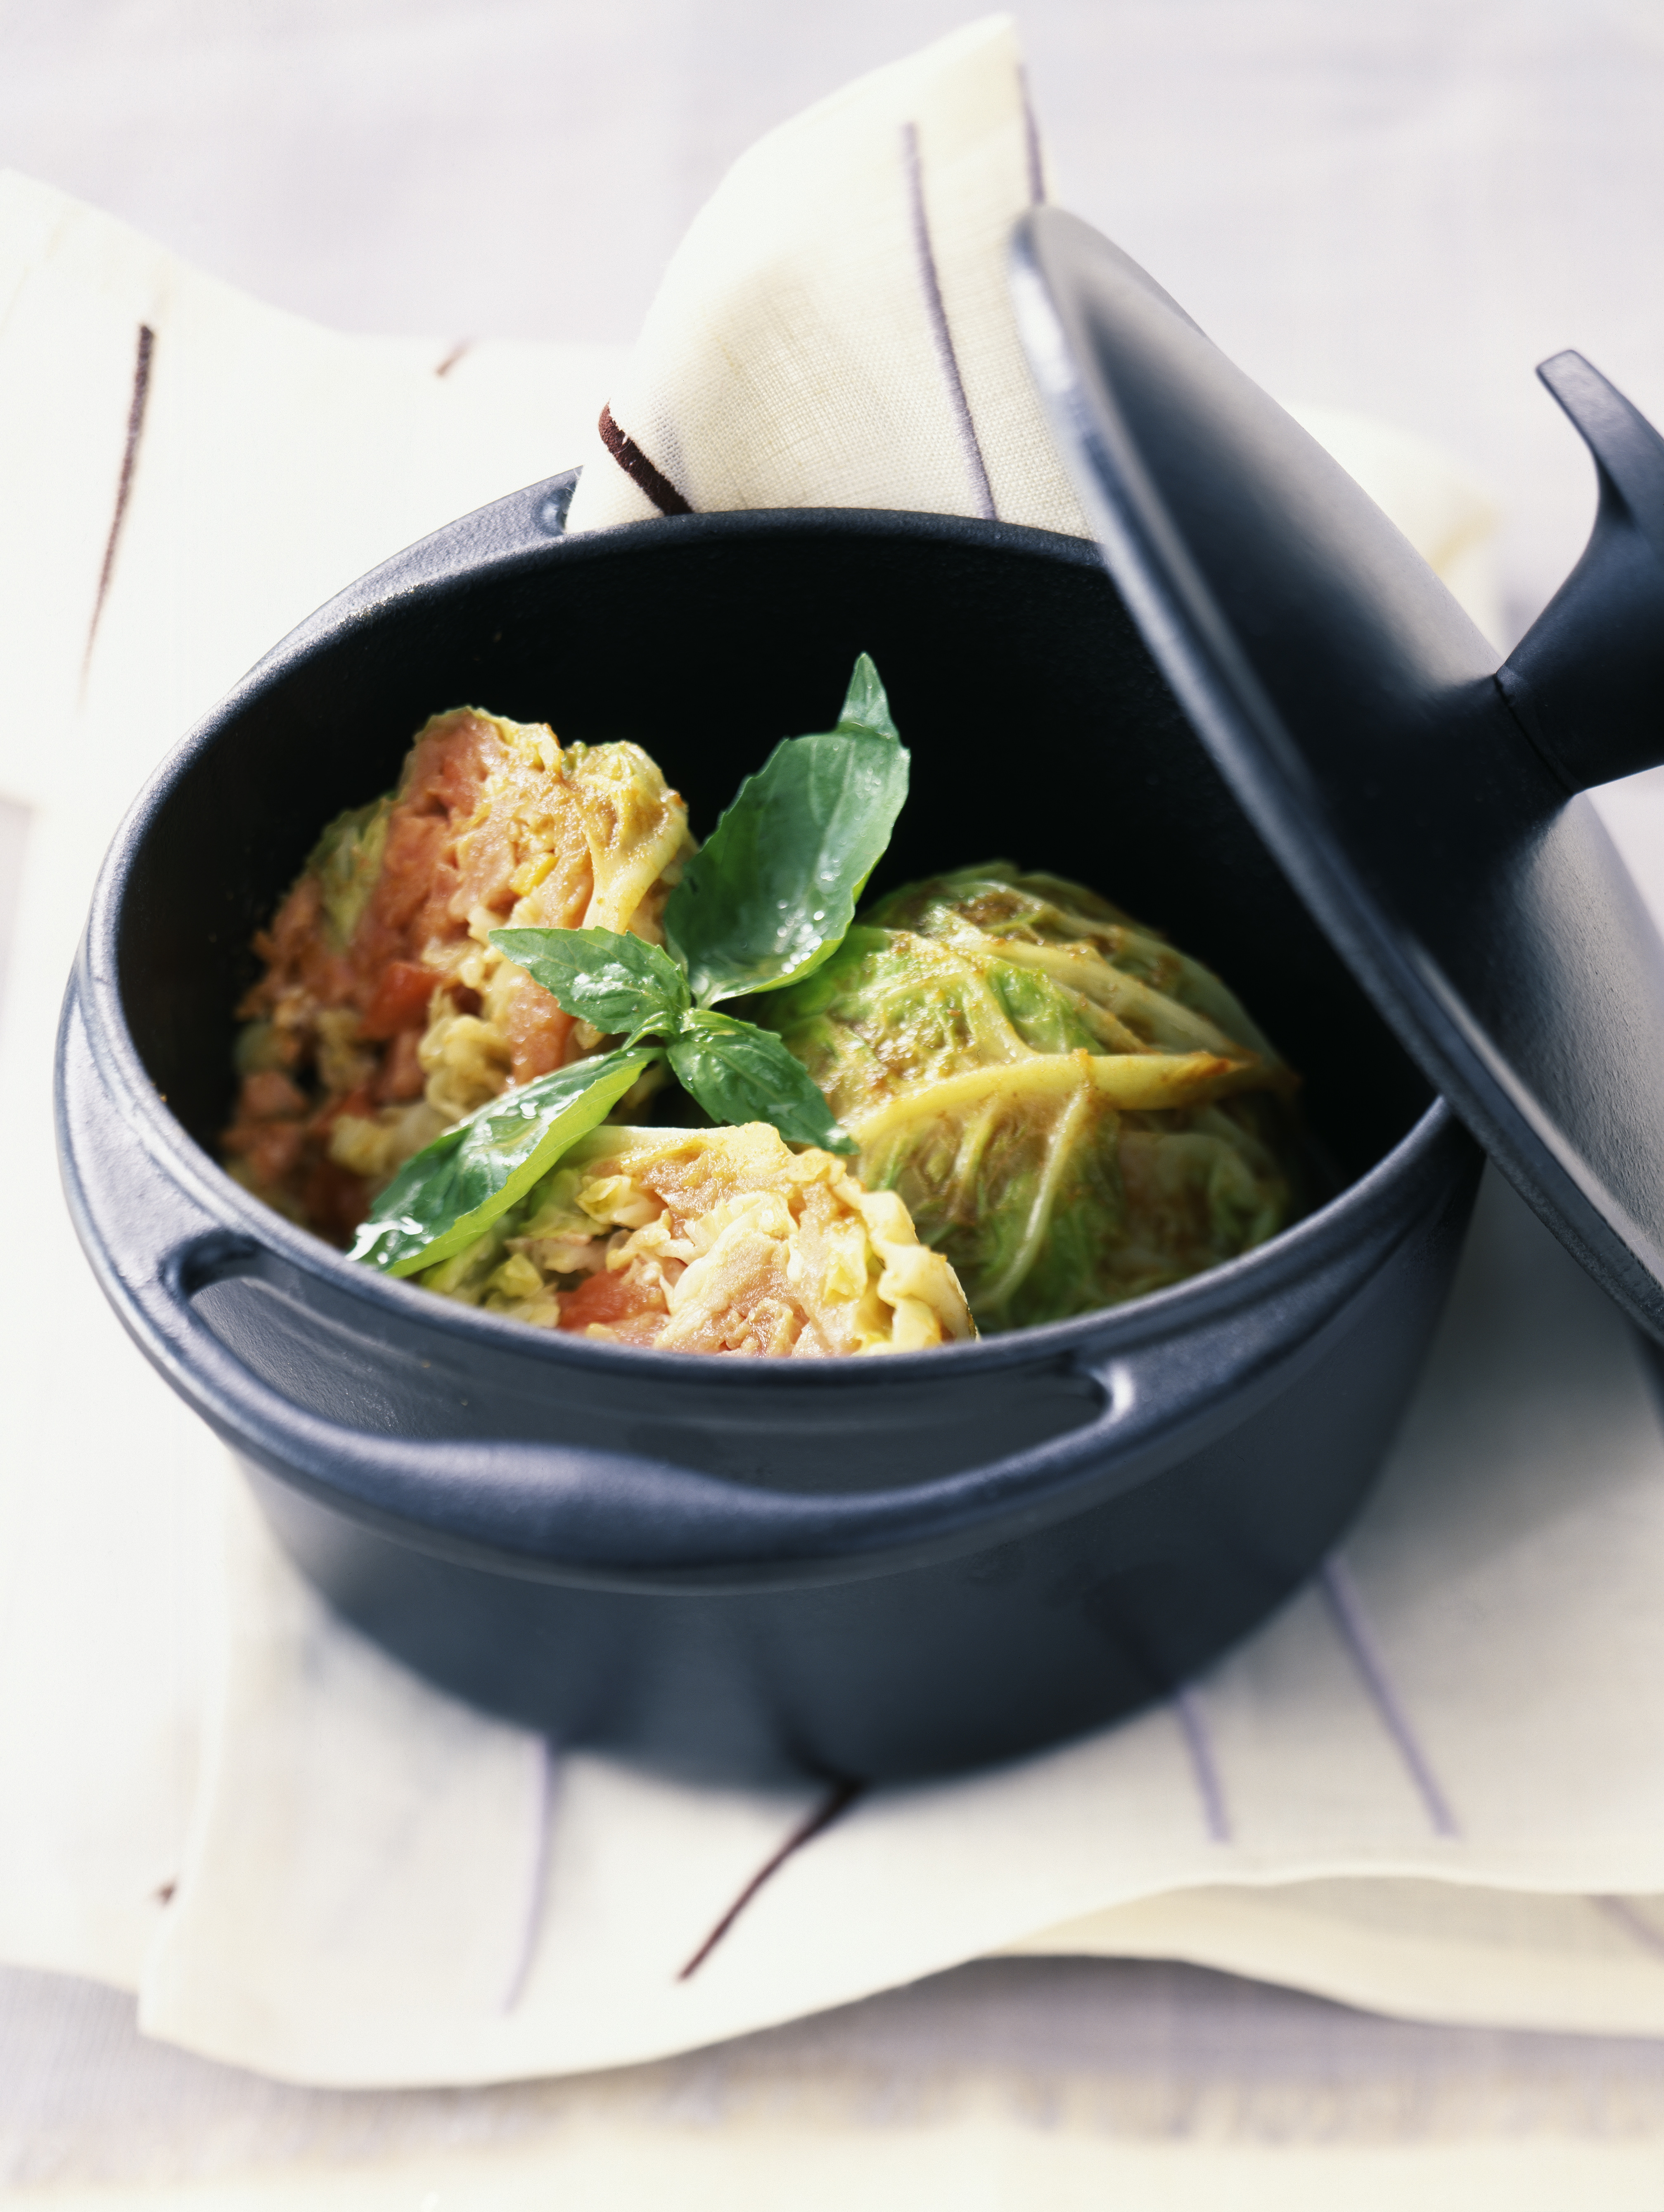 Cabbage stuffed with salmon